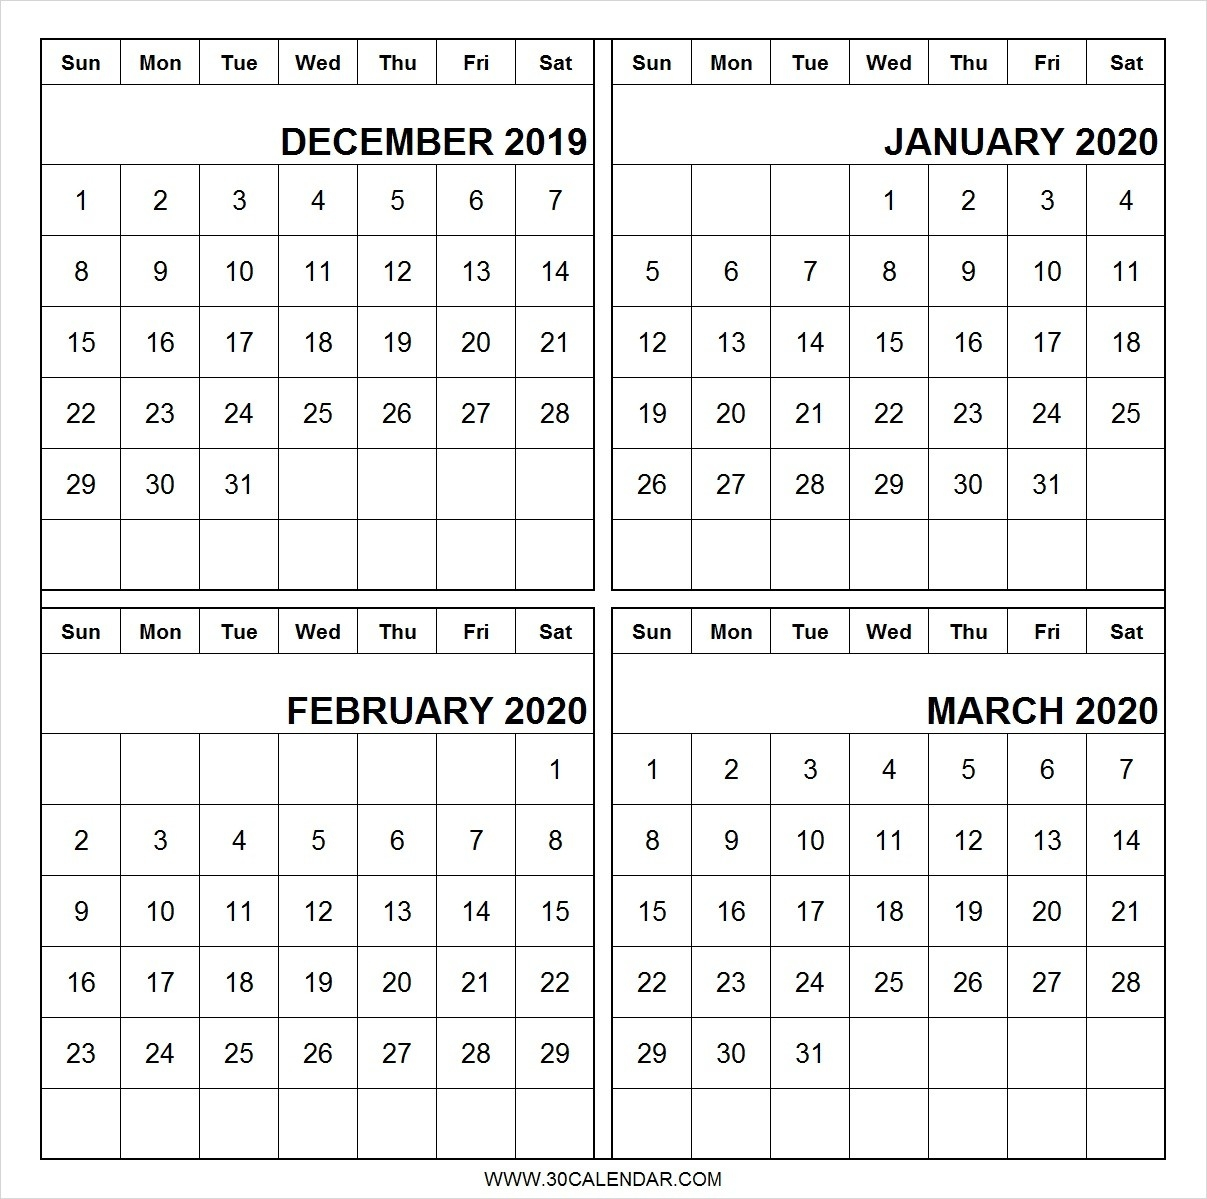 December-2019-January-February-March-2020-Calendar-Printable-2020 Calendar January February March